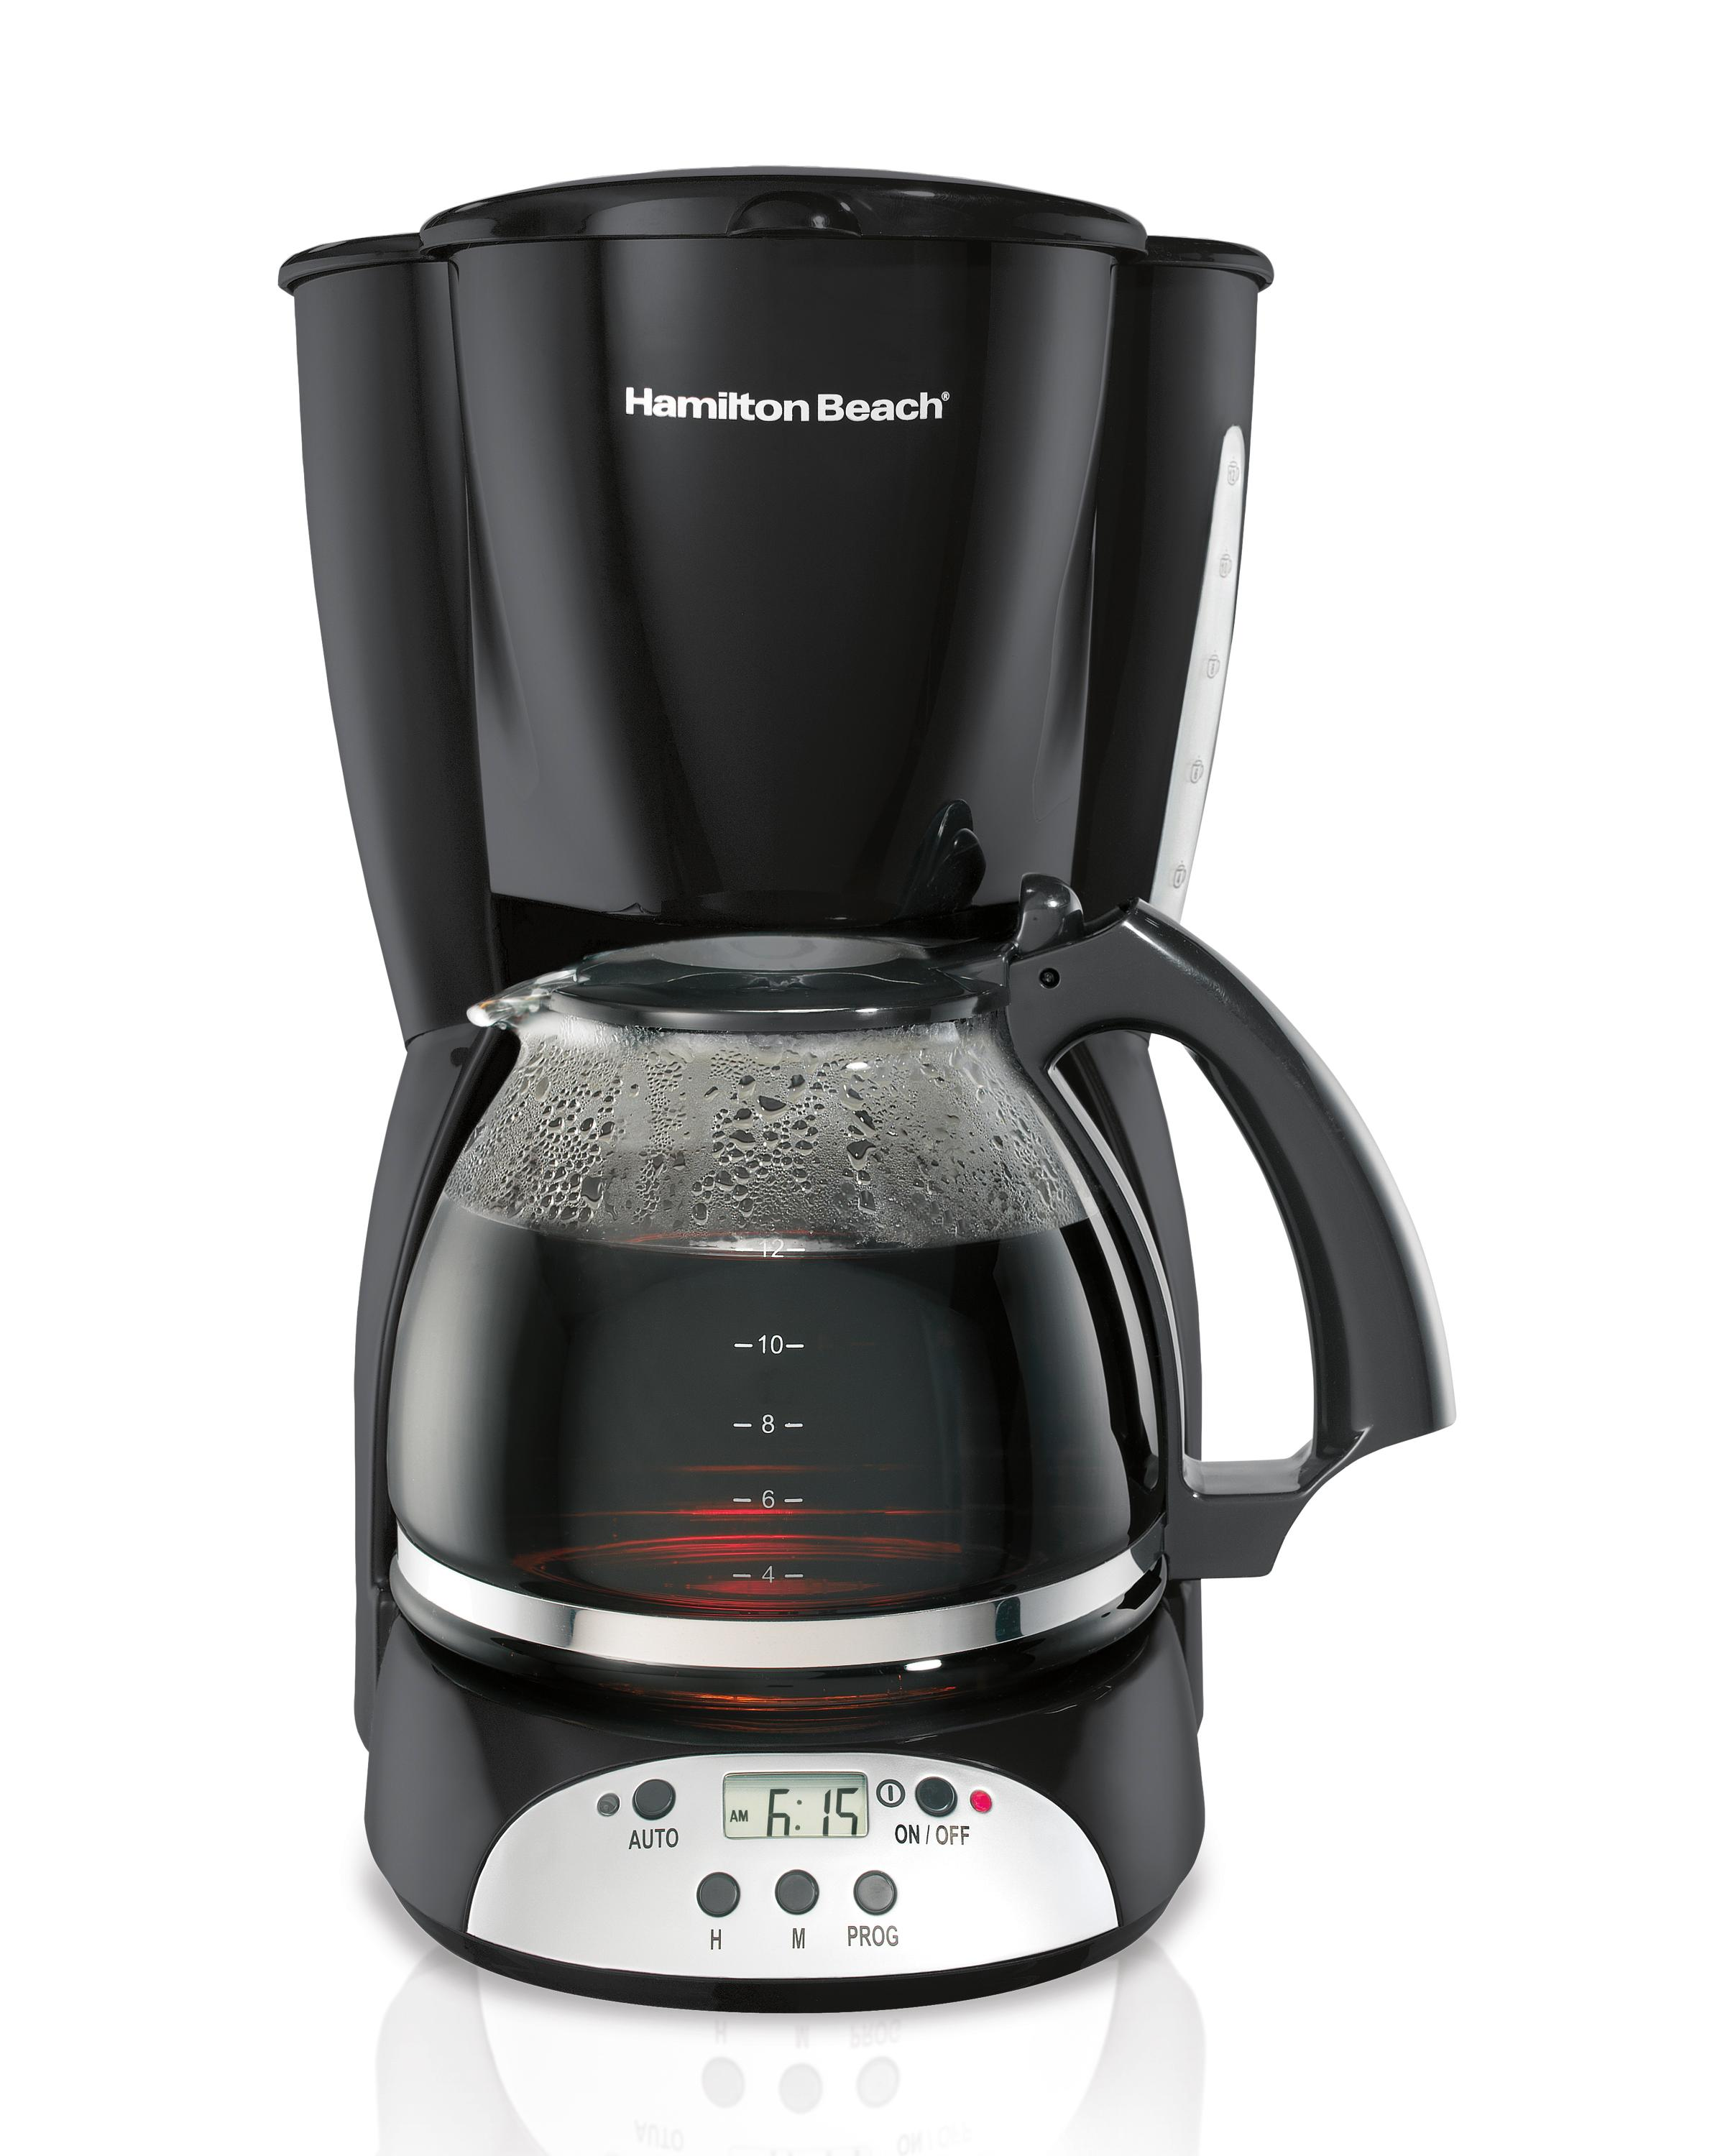 Hamilton beach 12 cup coffee maker digital Coffee maker brands